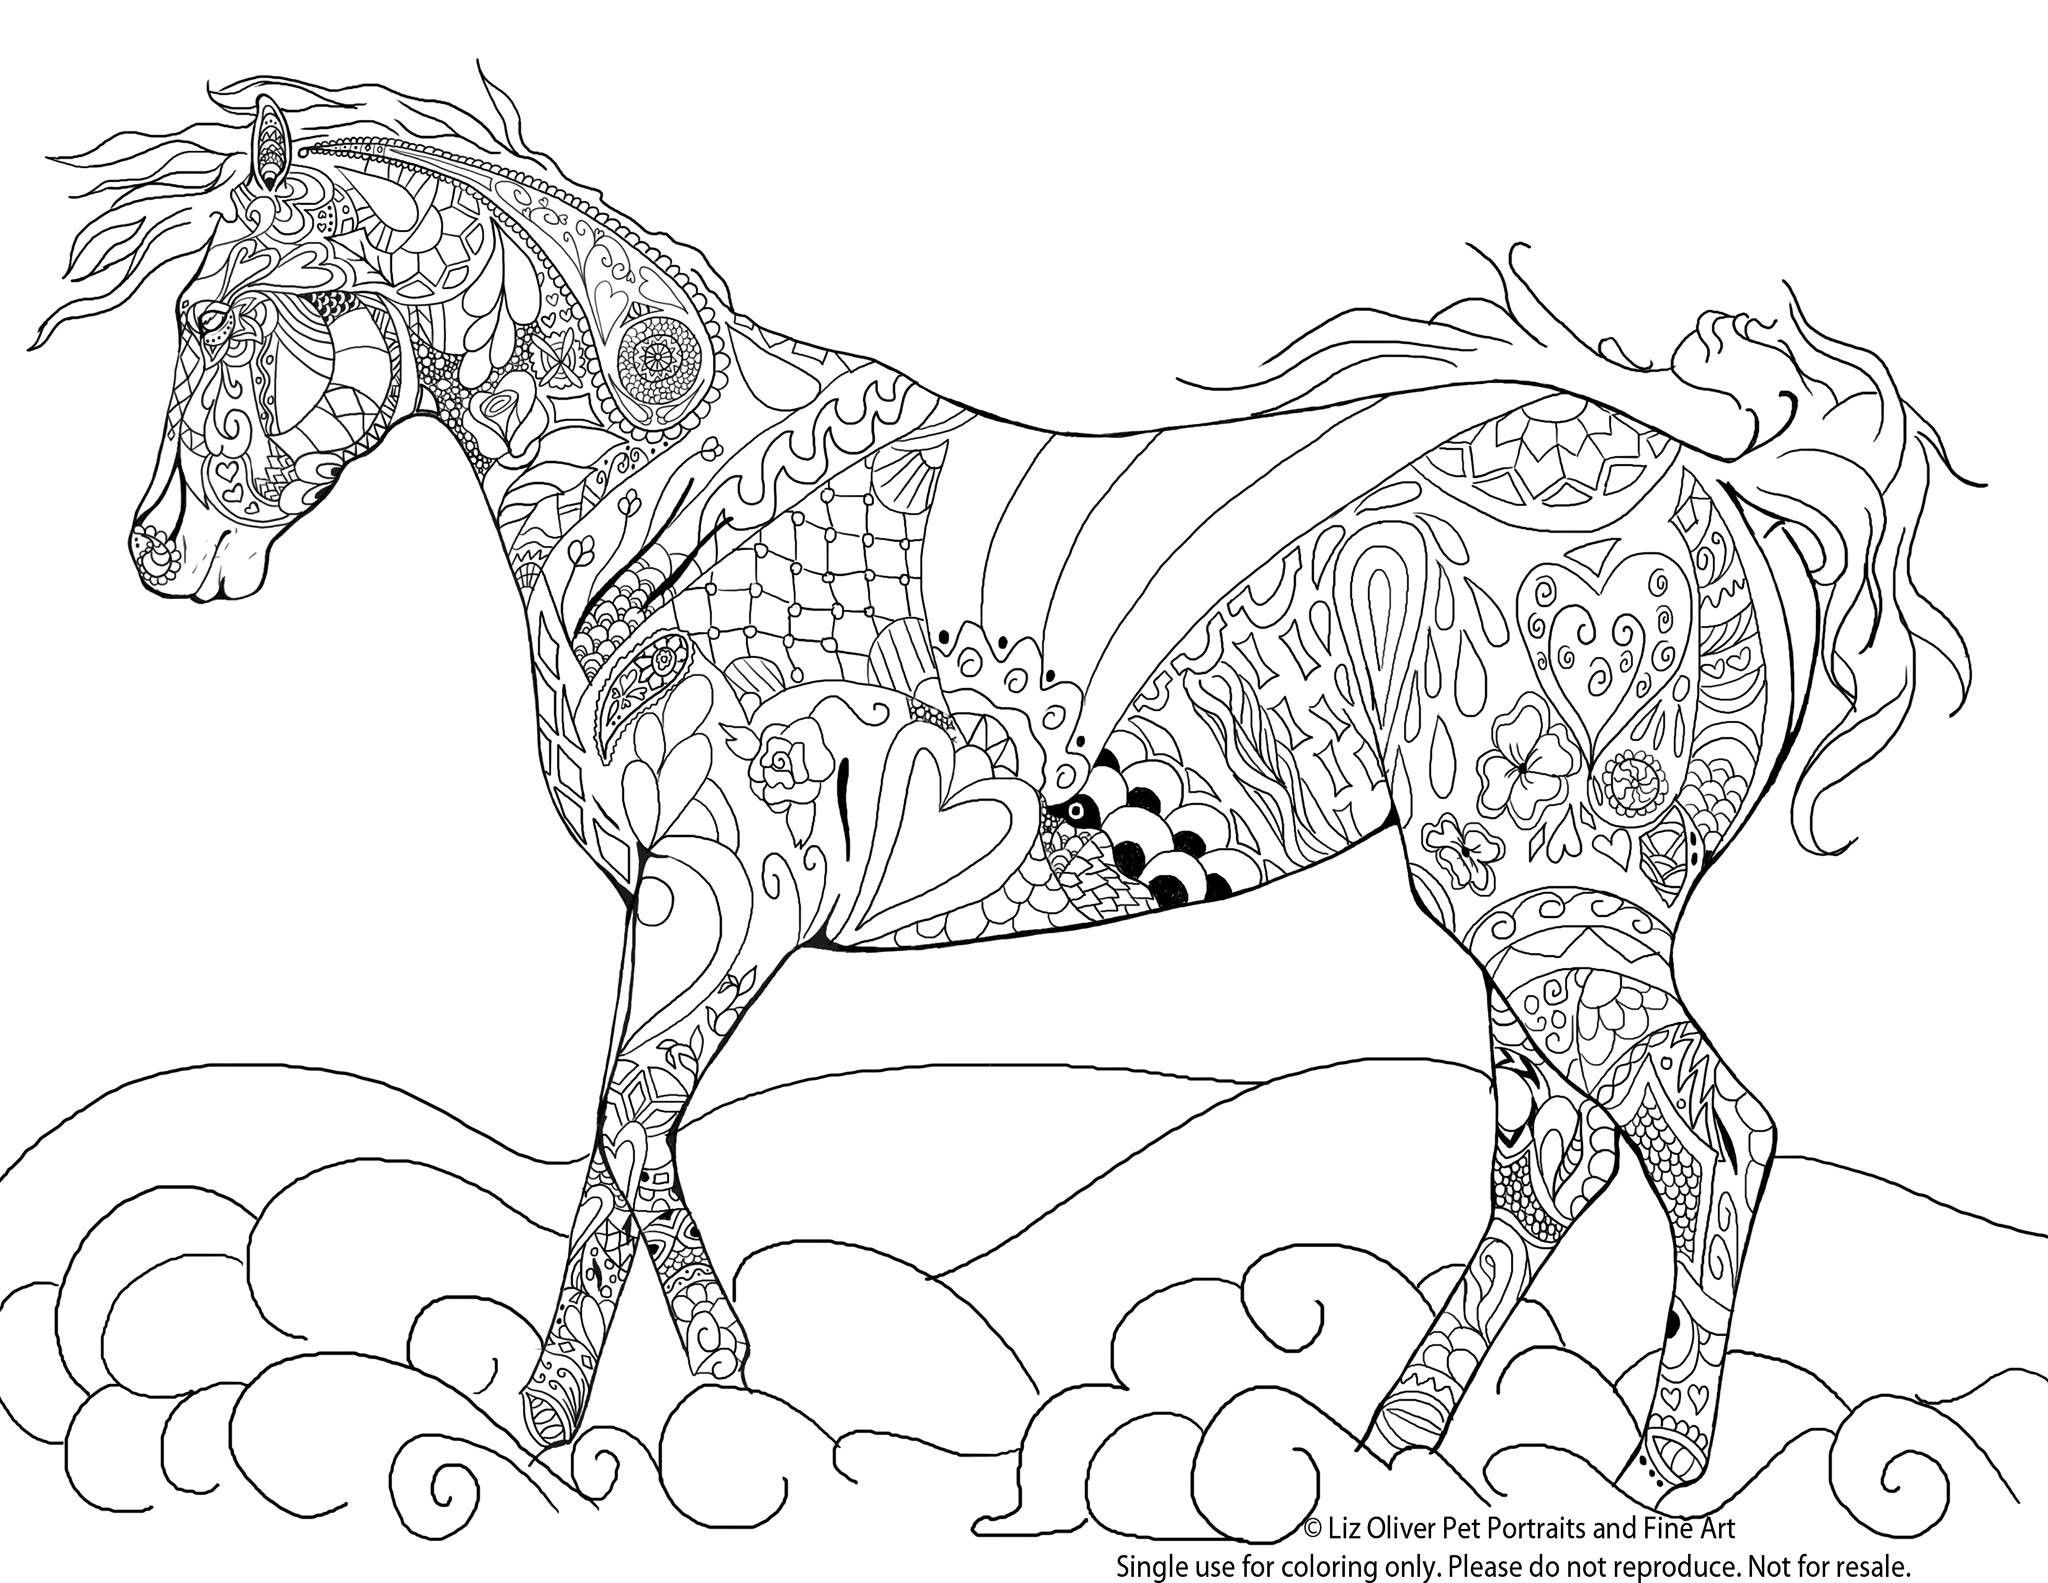 Coloriage Animaux A Colorier Sur L'ordinateur Contemporain serapportantà Image De Cheval A Colorier